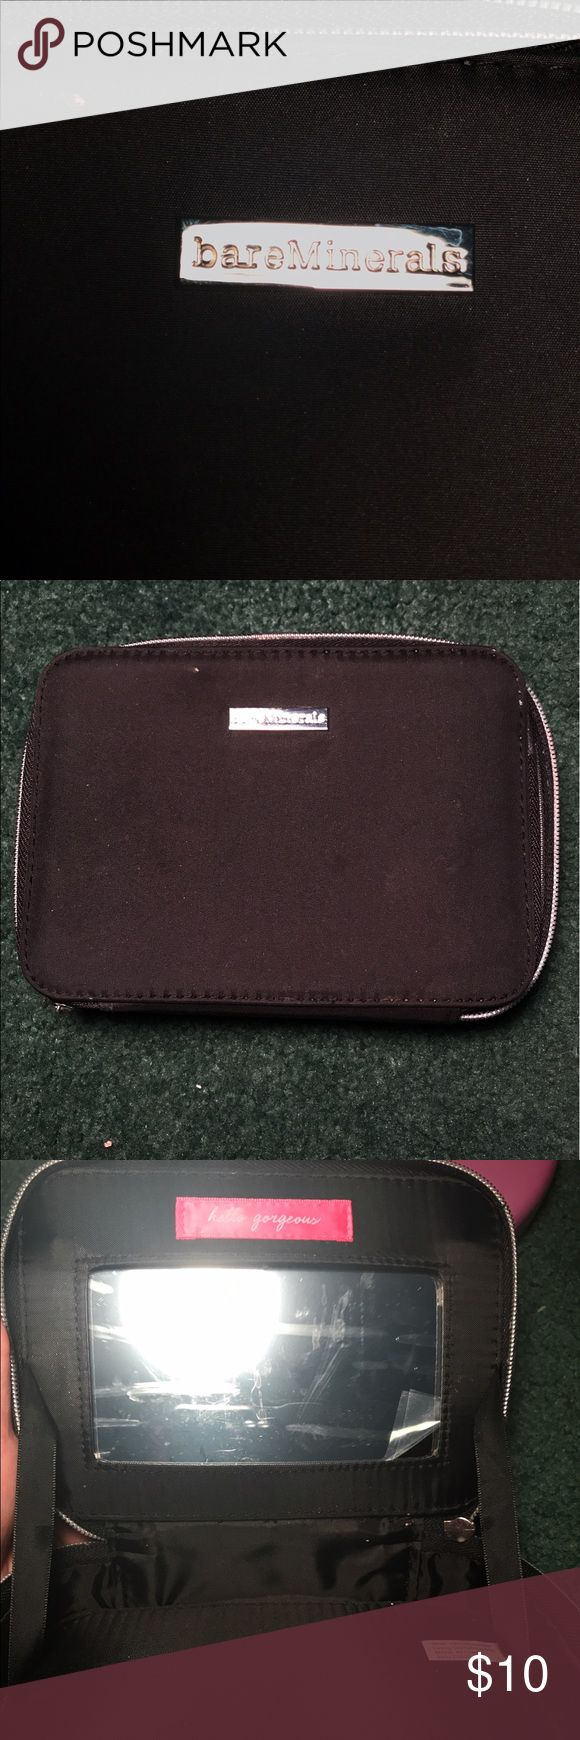 BareMinerals Makeup Bag This is from a dumpster dive. It looks nice. It is black. Still has wrapping on the mirror on it. I have like 5 makeup bags that's why I'm not keeping it. Ready to ship. Only serious buyers please. bareMinerals Makeup